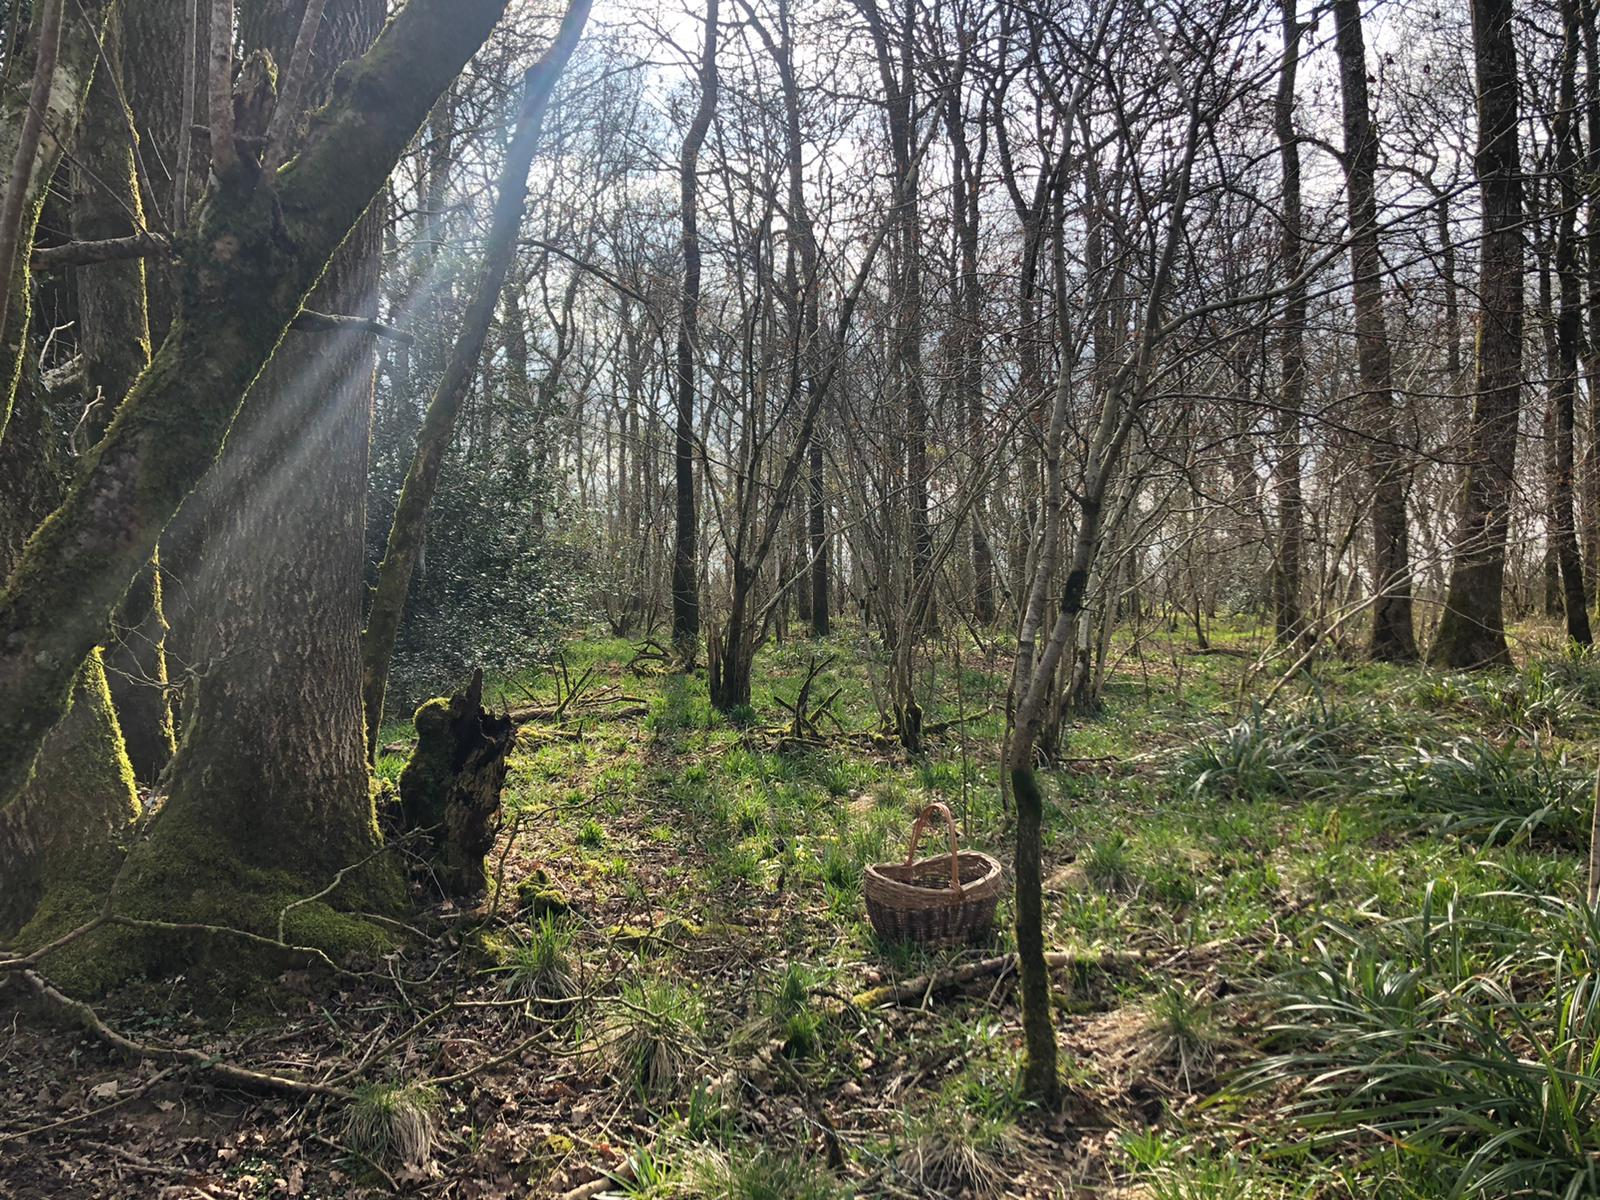 Photo of Field 725's woods with basket in foreground